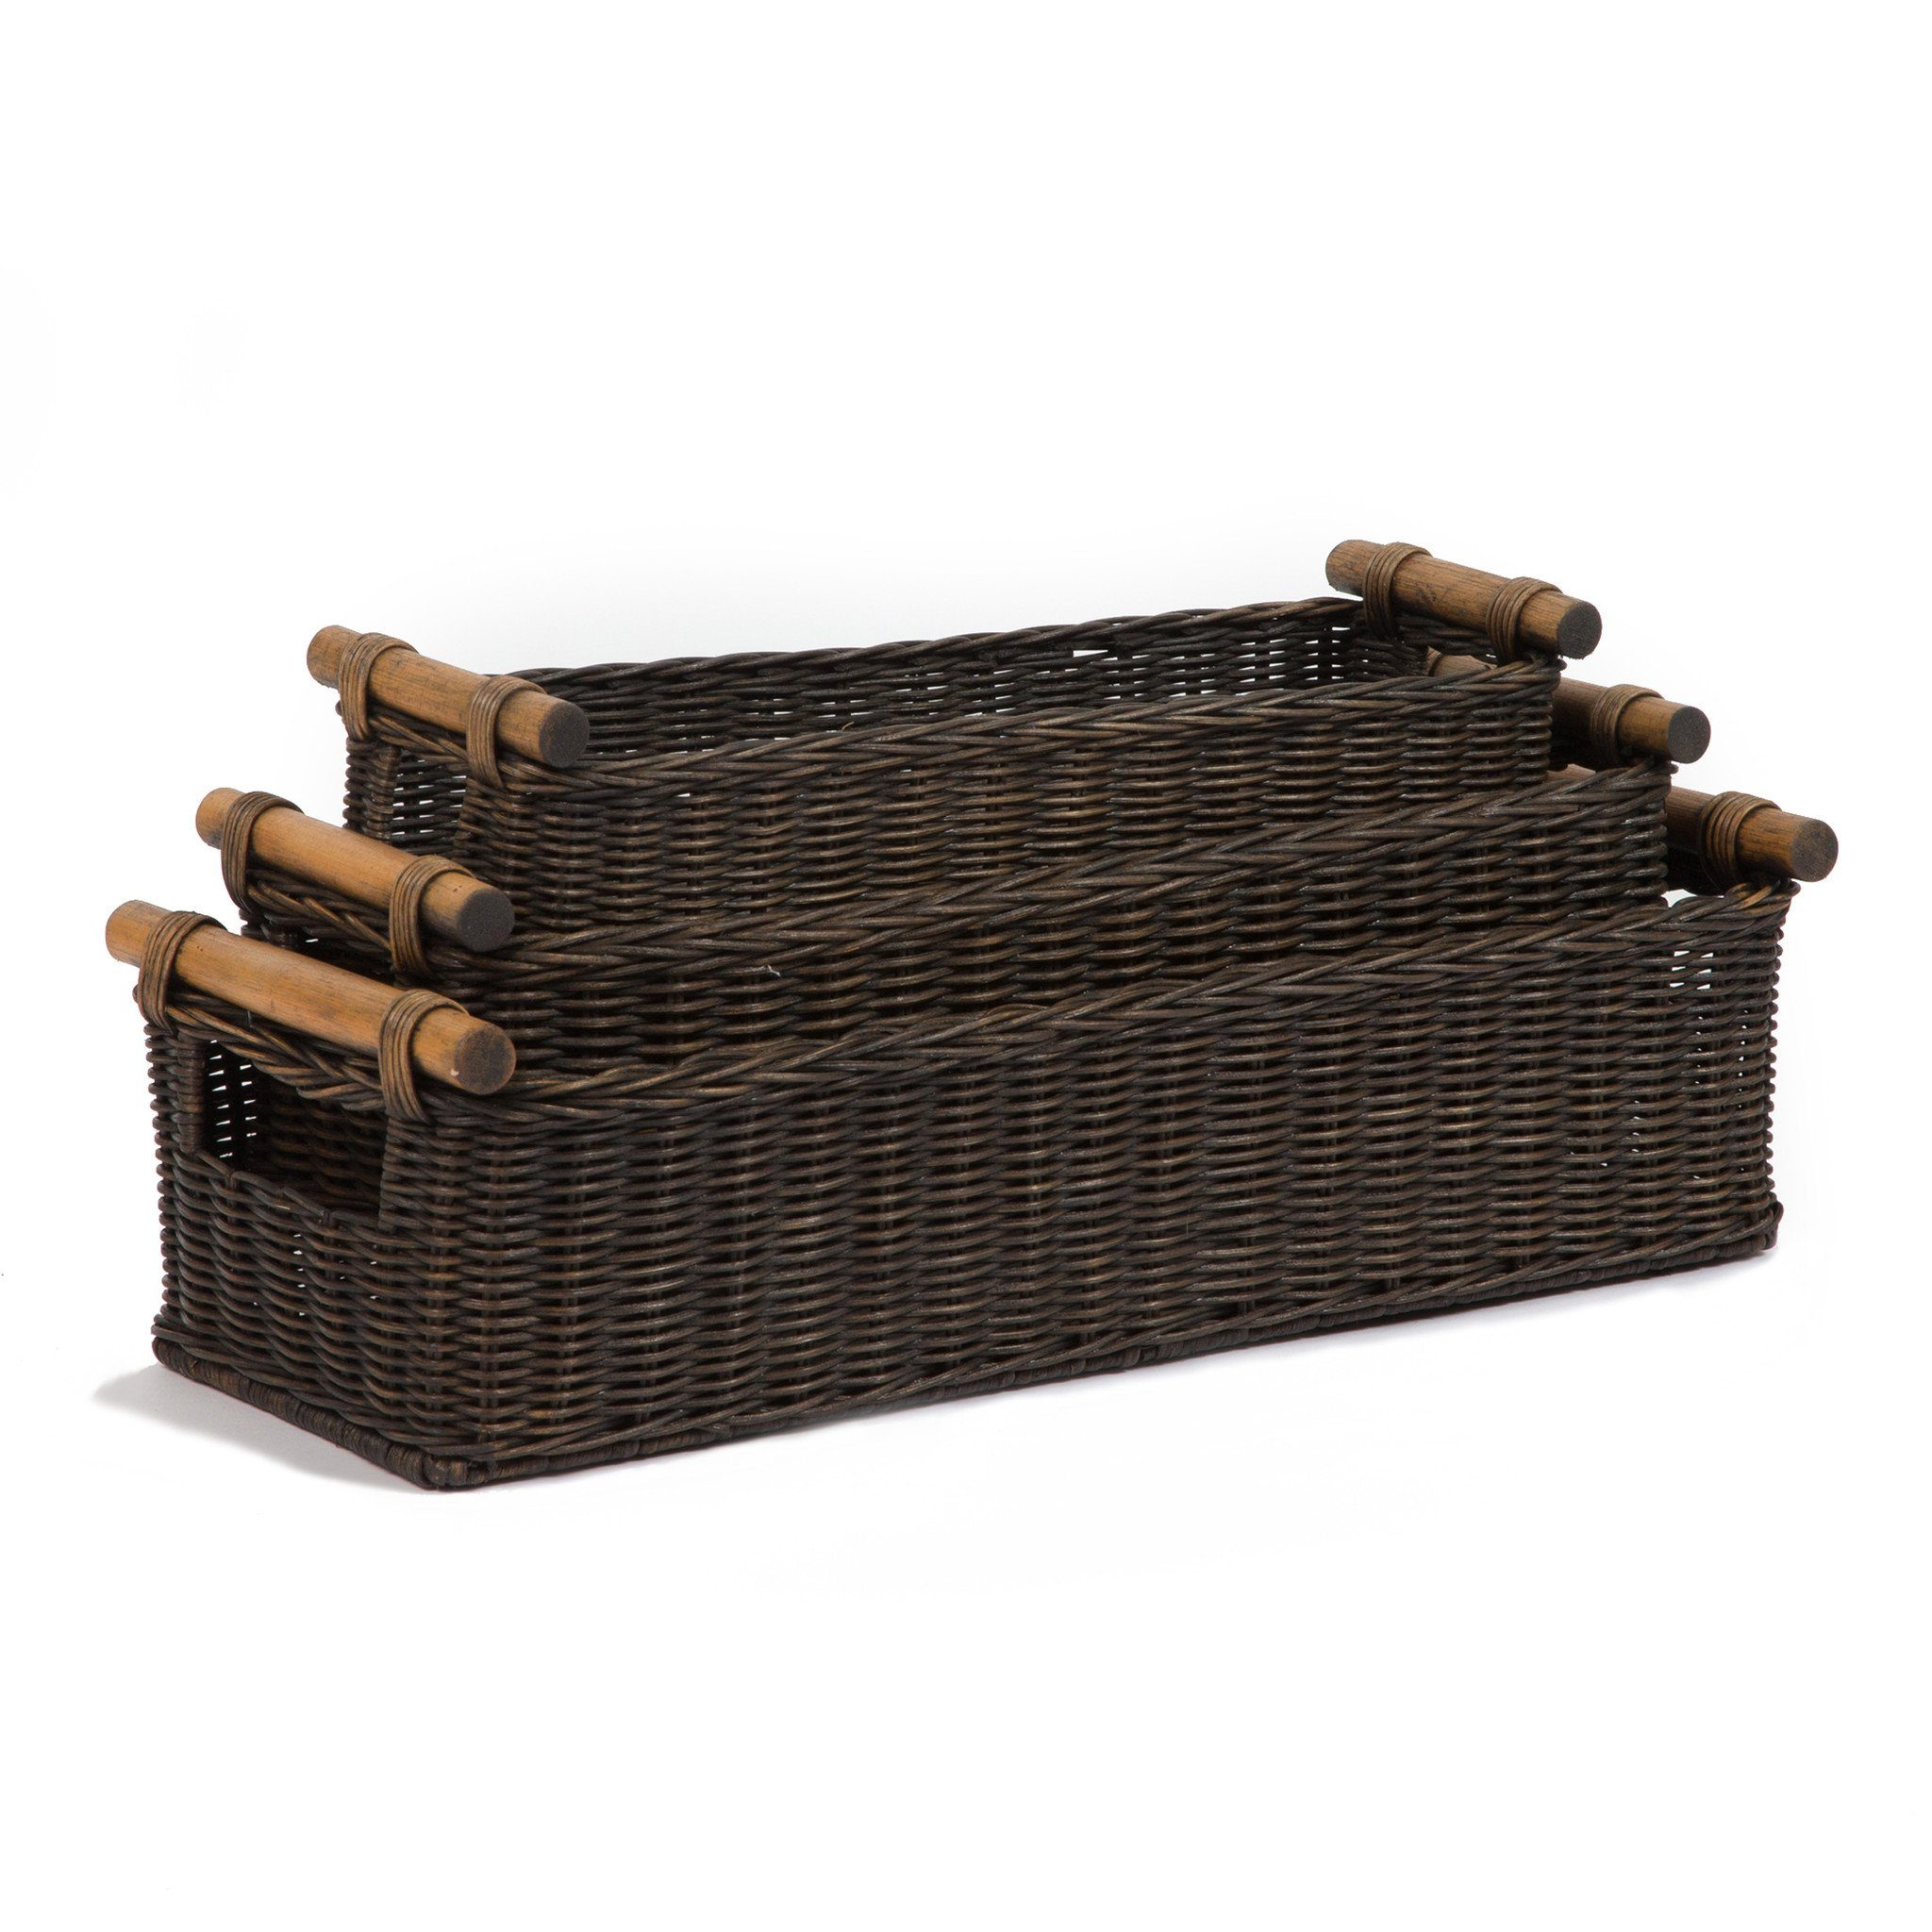 Long Narrow Pole Handle Basket, 3 sizes shown in Antique Walnut Brown